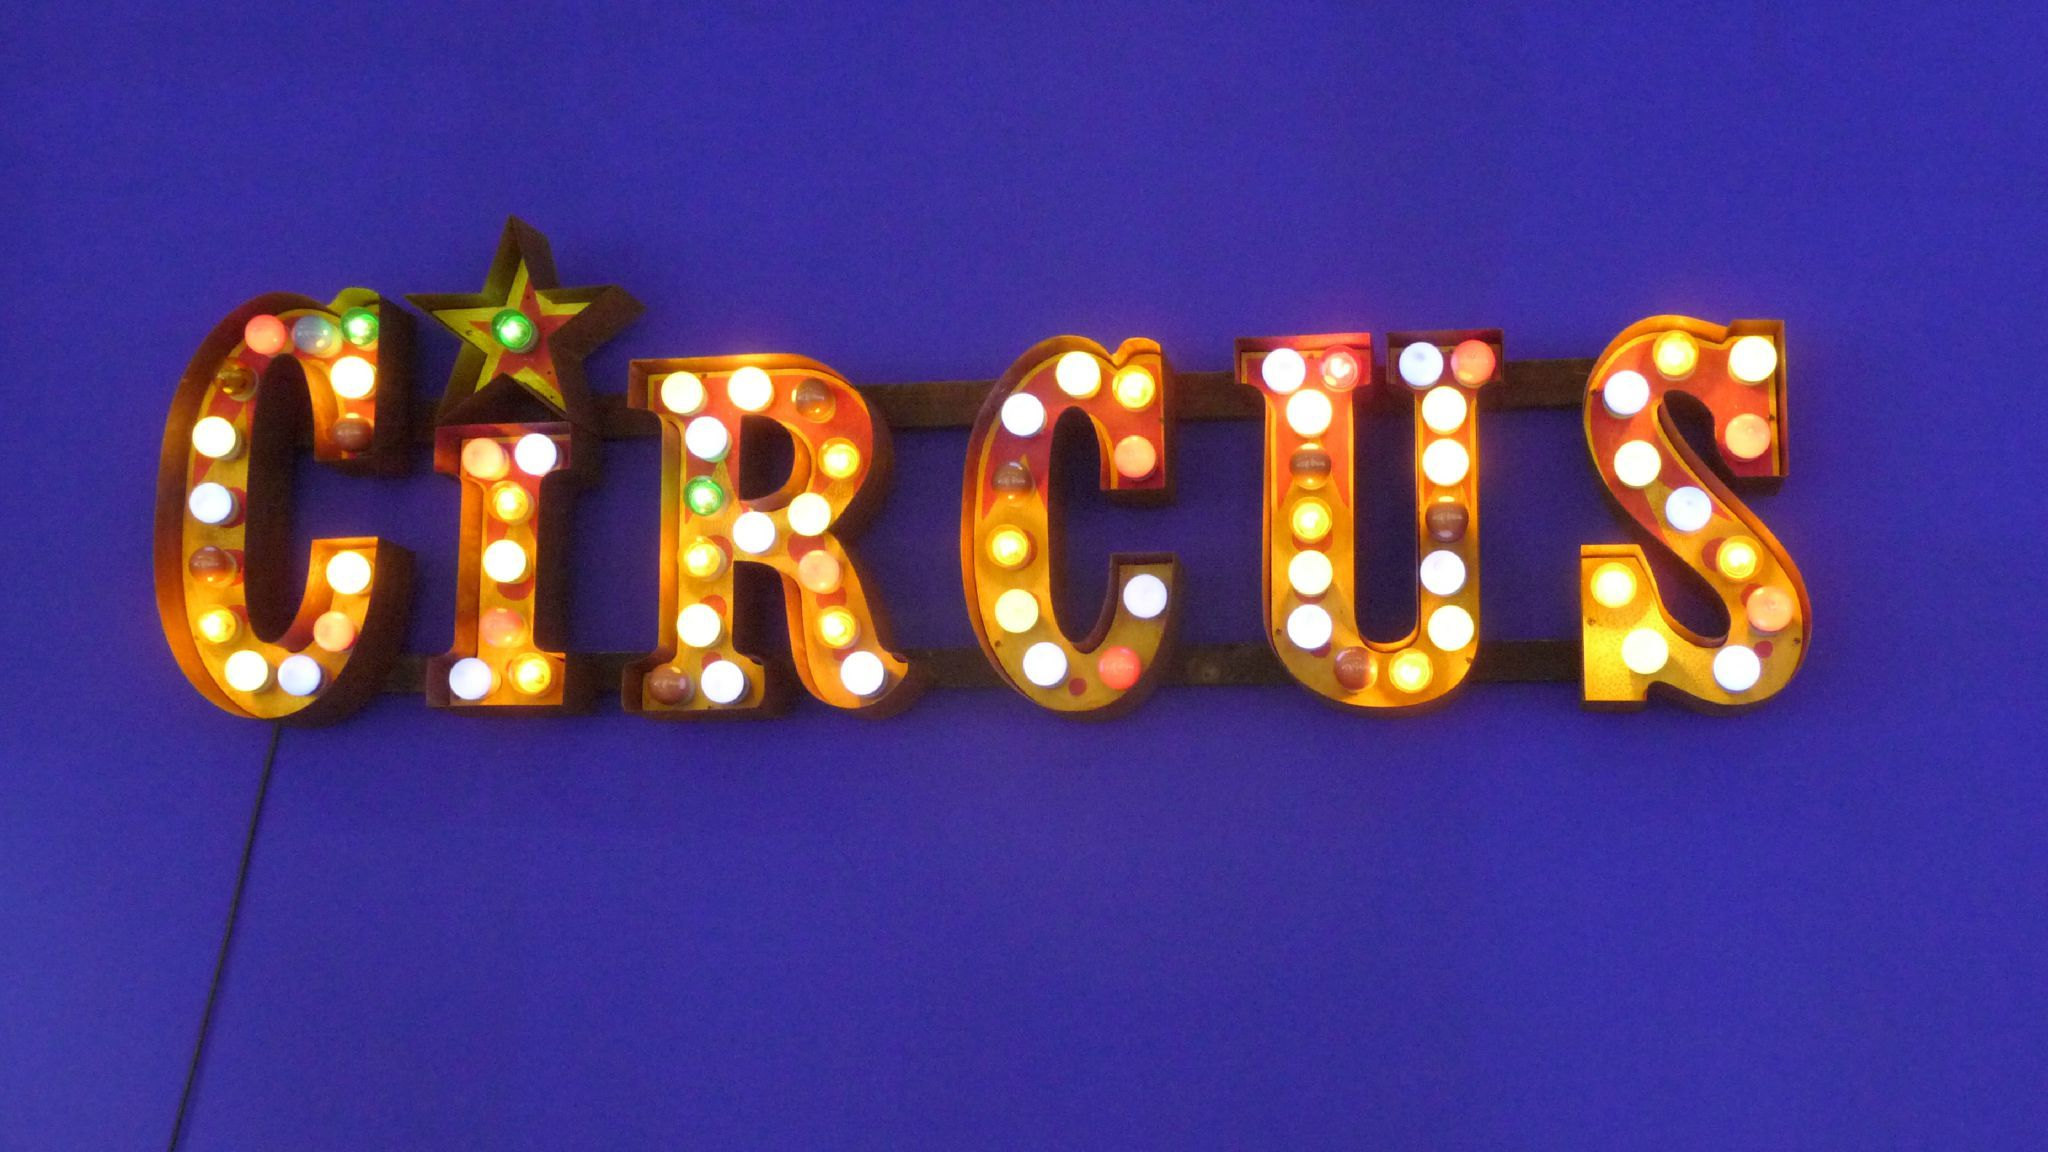 Neon Verlichting Kinderkamer Circus Light Decoratie Night Circus Not My Circus En